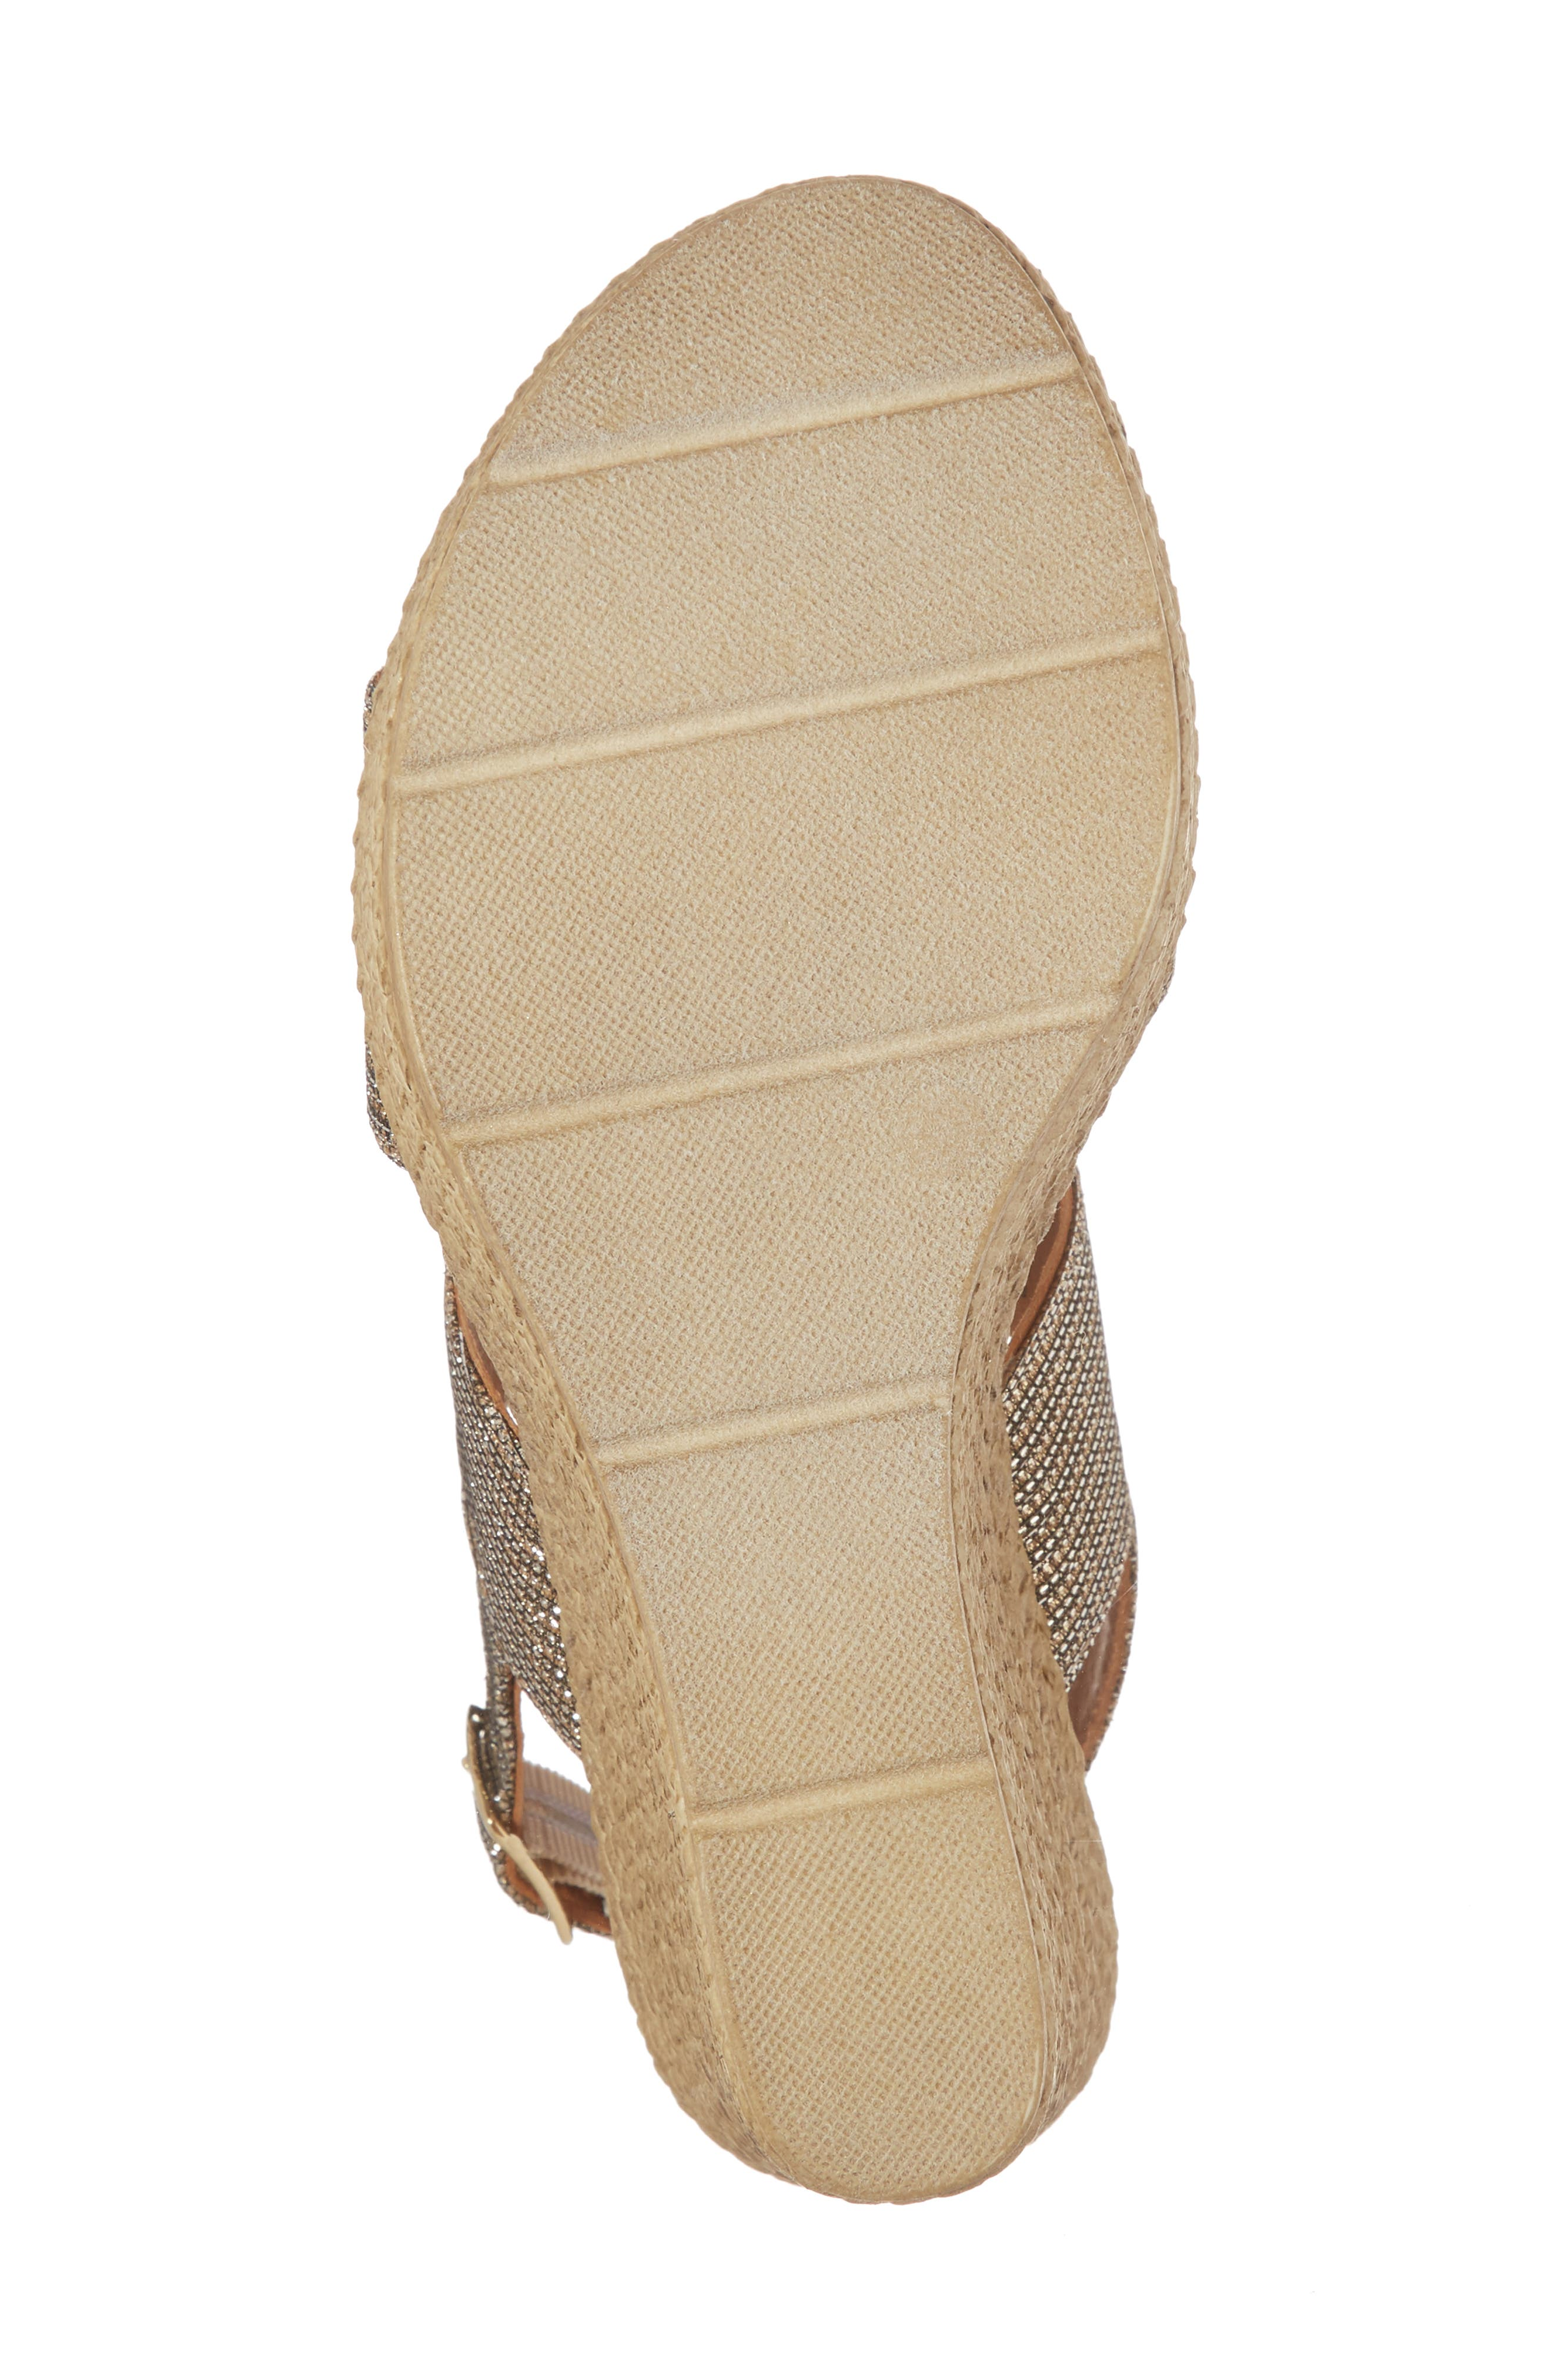 Downtime Wedge Sandal,                             Alternate thumbnail 6, color,                             220